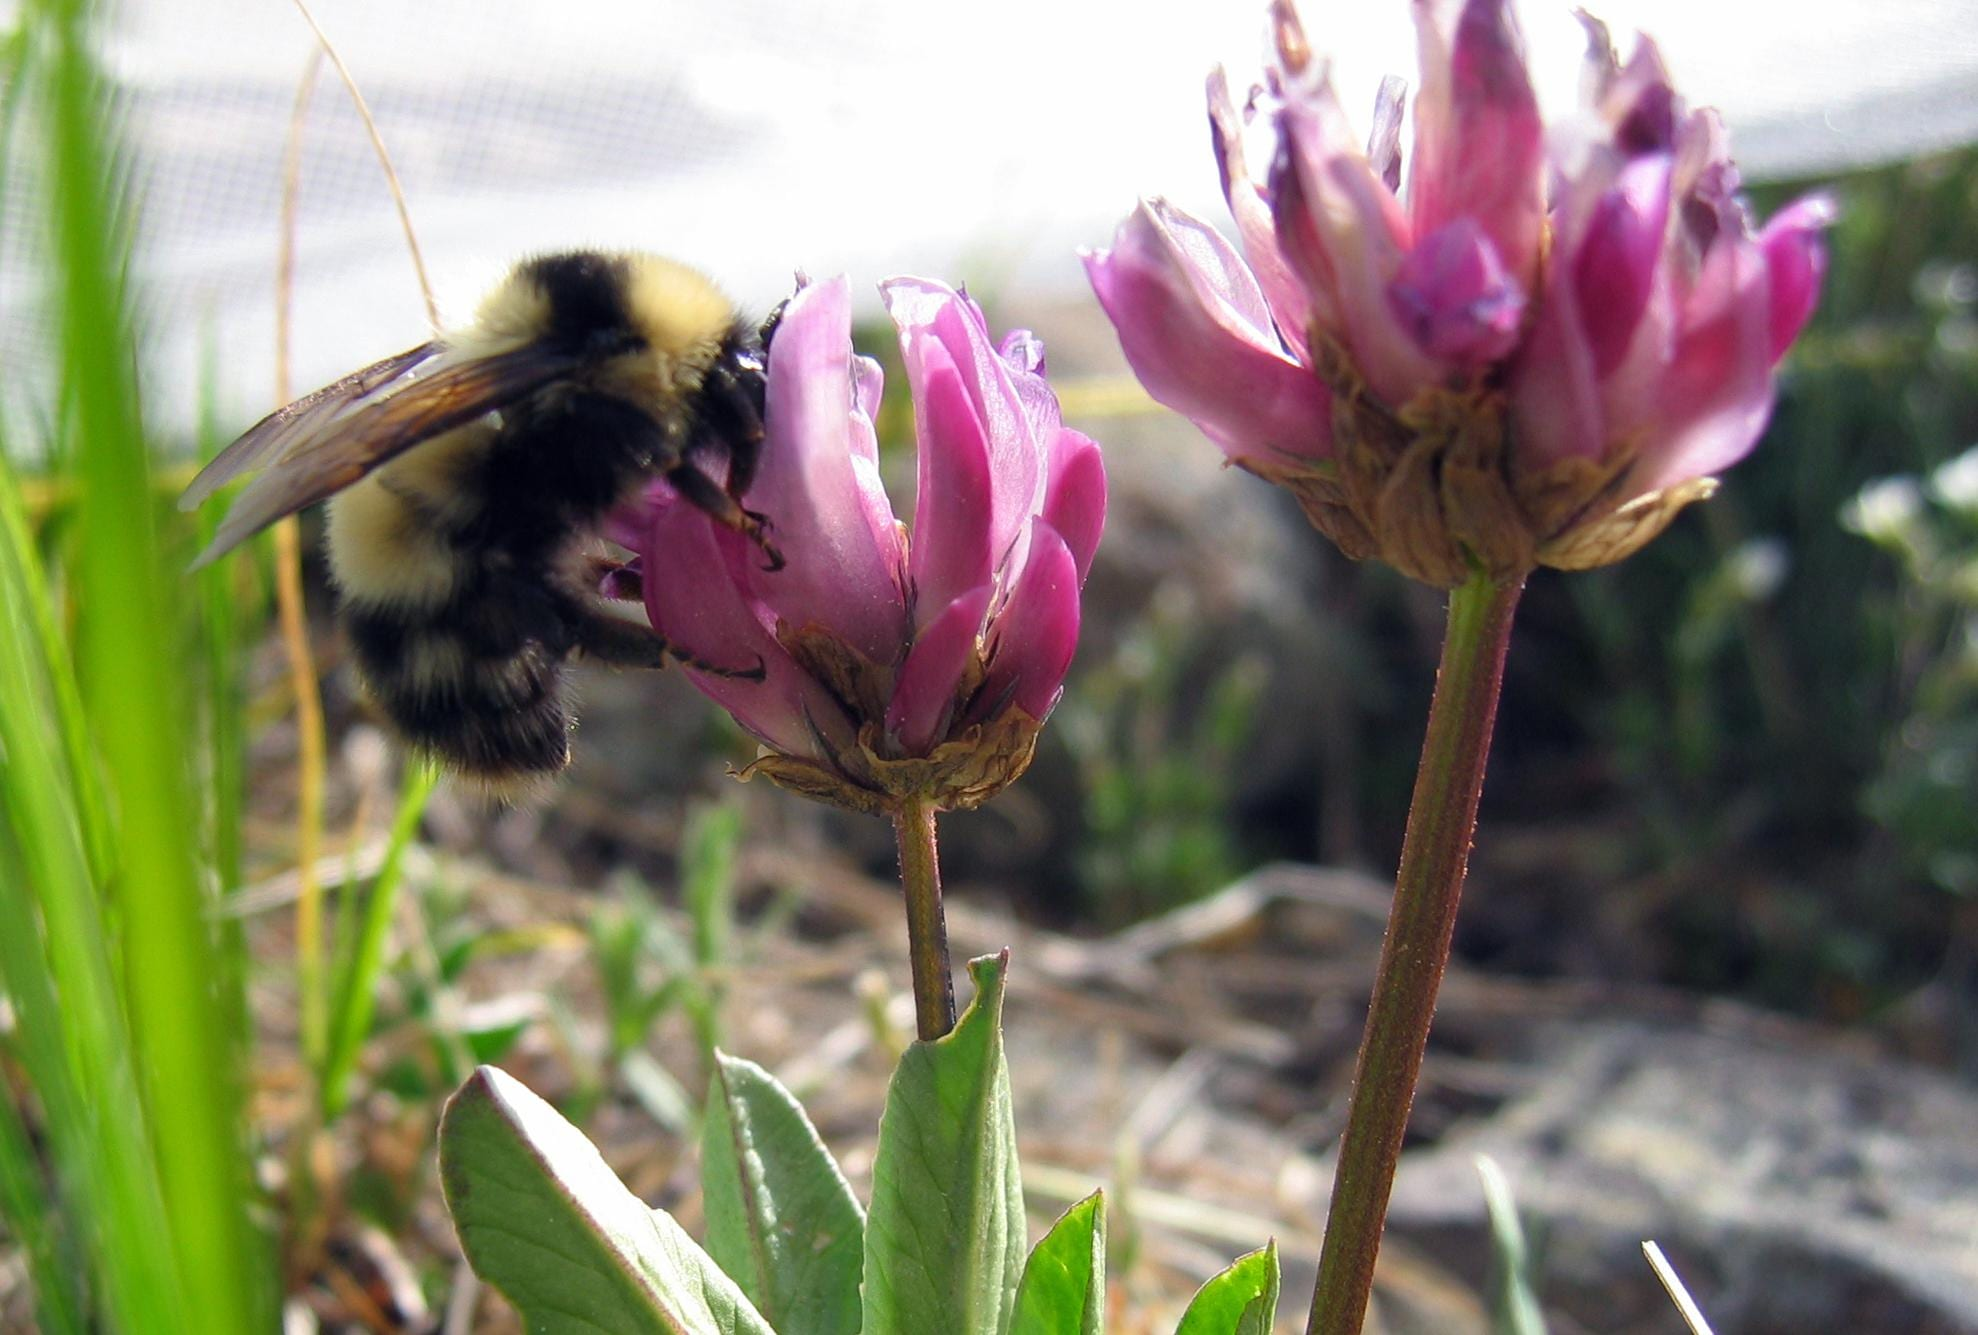 A bumblebee queen collects nectar from alpine clover.